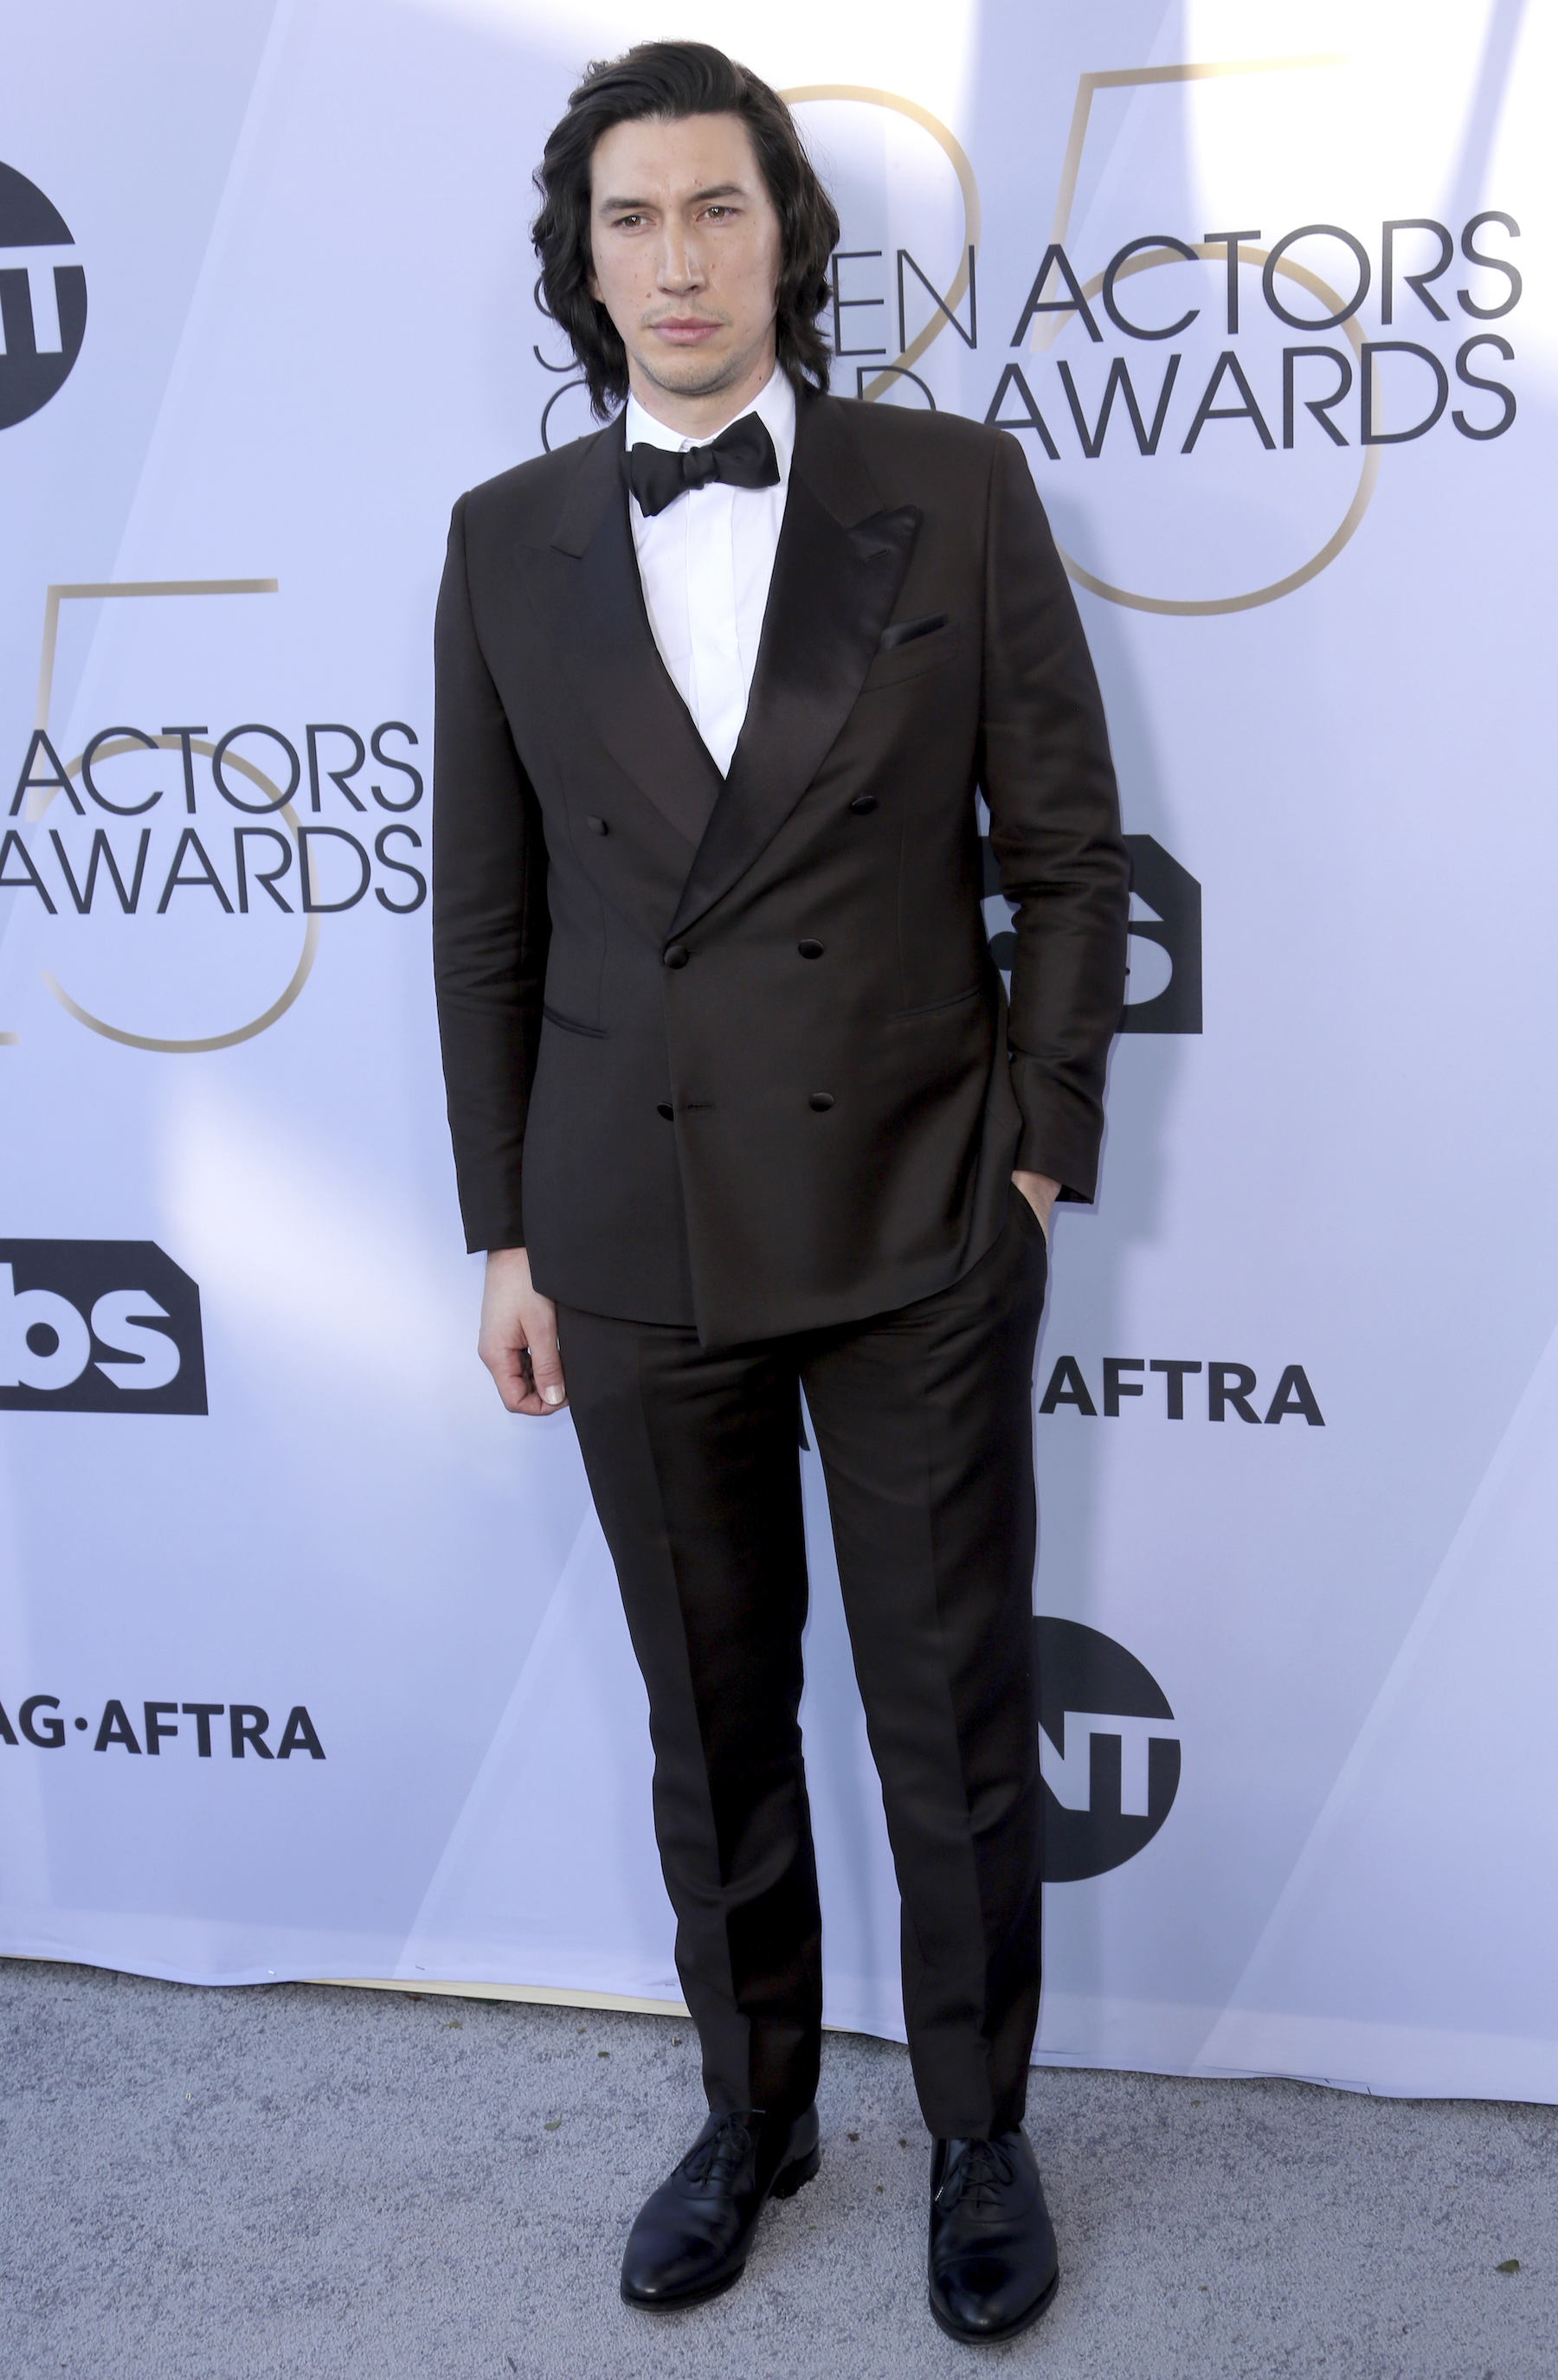 <div class='meta'><div class='origin-logo' data-origin='AP'></div><span class='caption-text' data-credit='Willy Sanjuan/Invision/AP'>Adam Driver arrives at the 25th annual Screen Actors Guild Awards at the Shrine Auditorium & Expo Hall on Sunday, Jan. 27, 2019, in Los Angeles.</span></div>